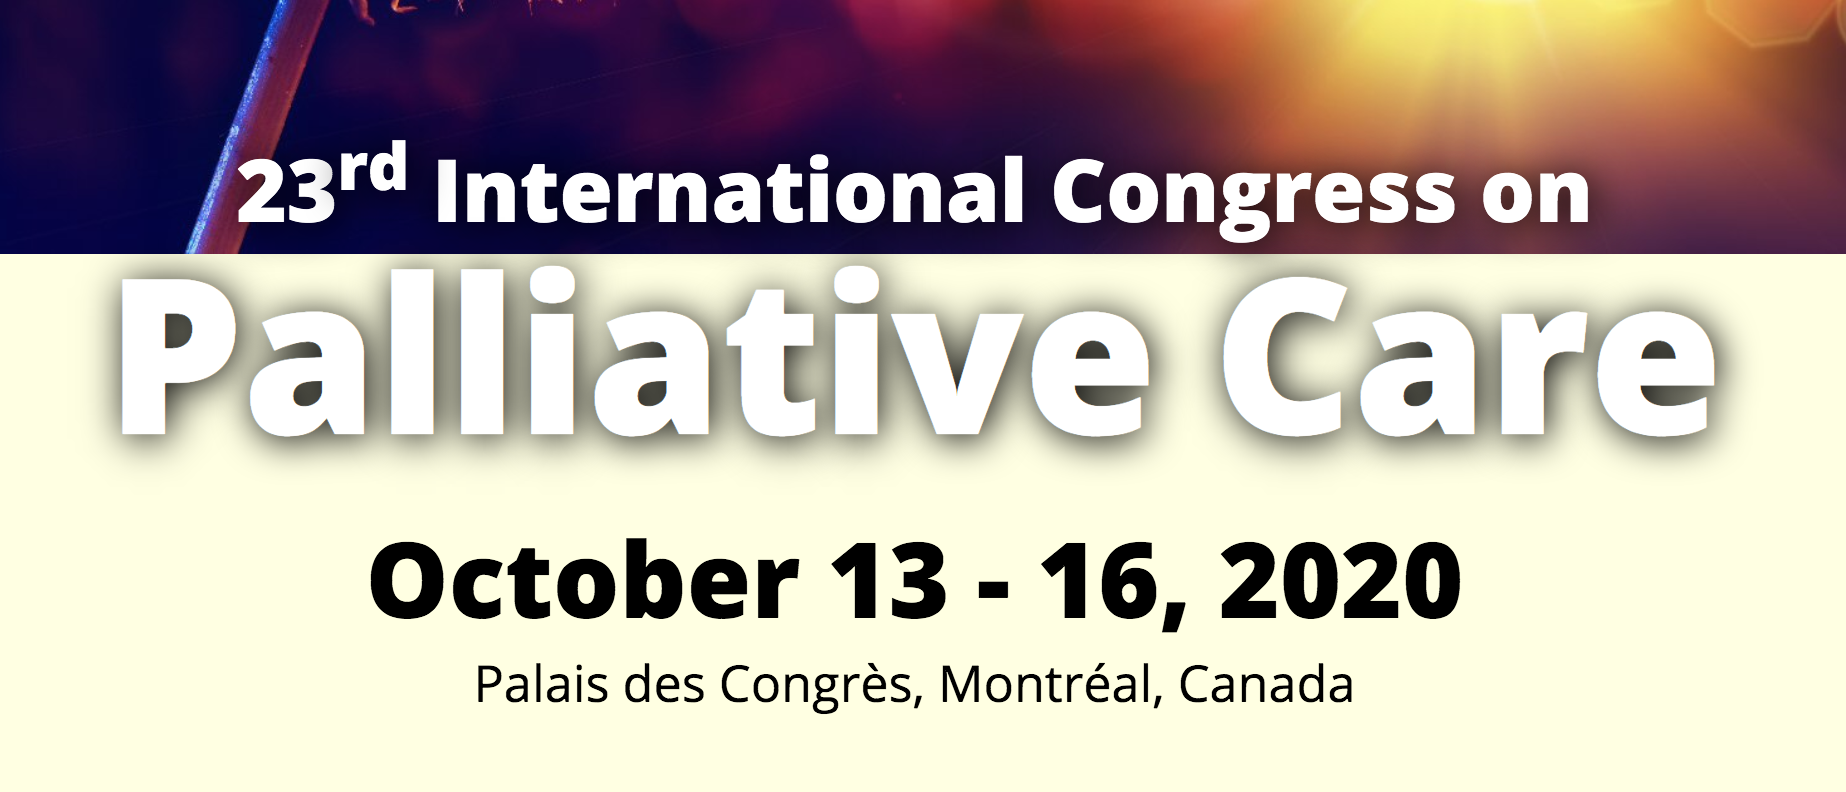 Palliative Care Congress